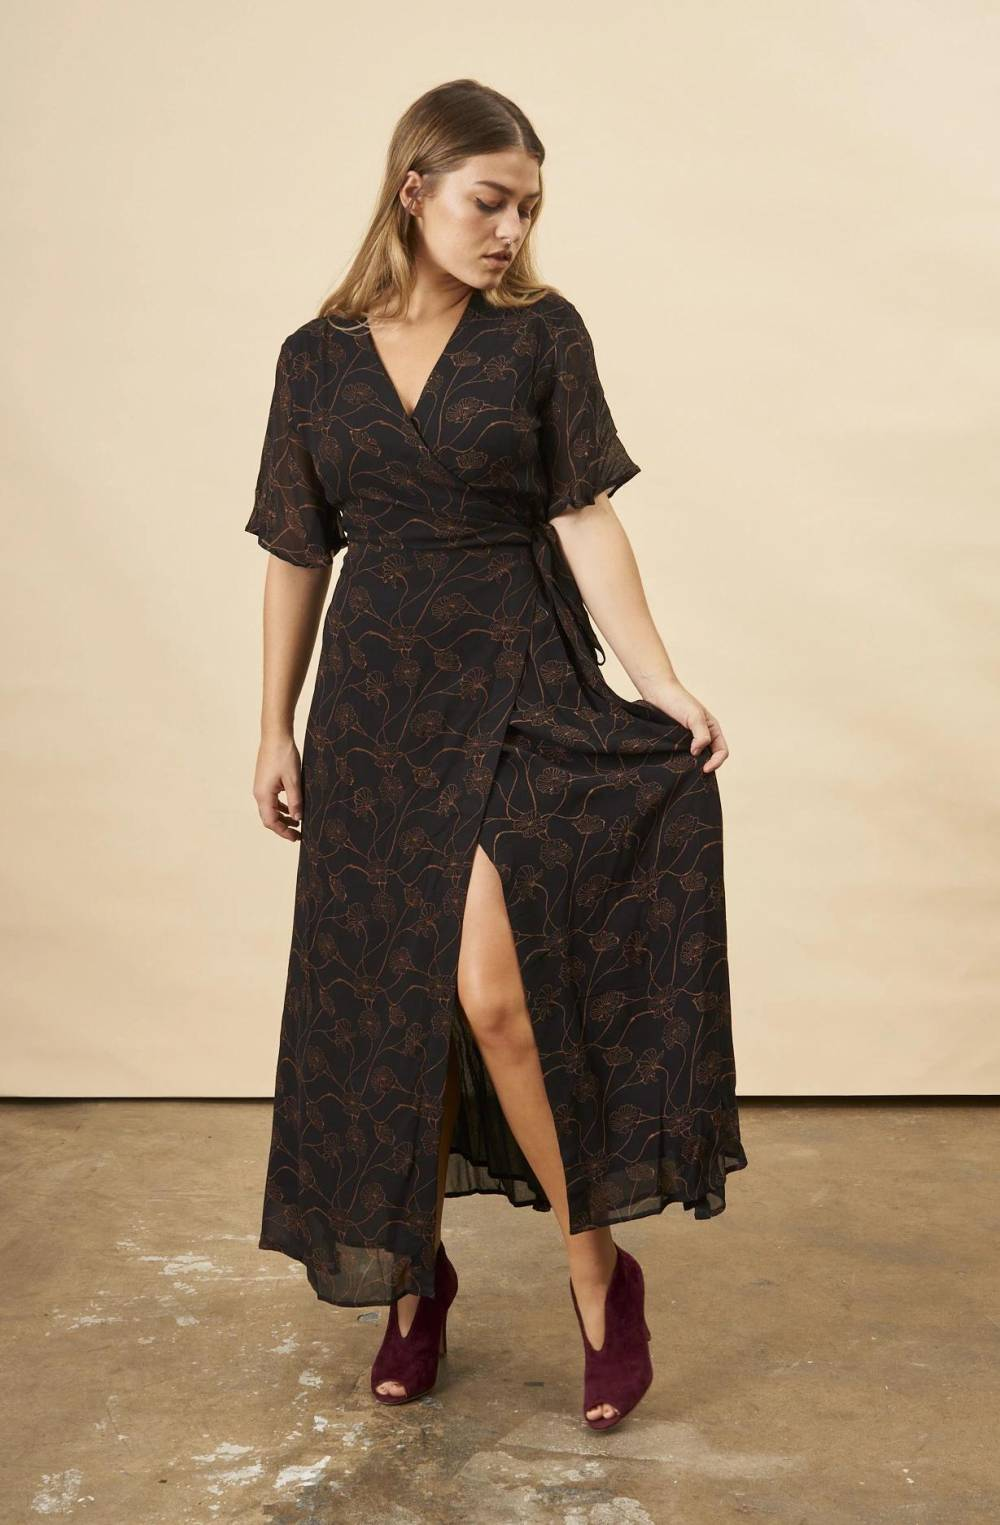 made trade inverted triangle dresses